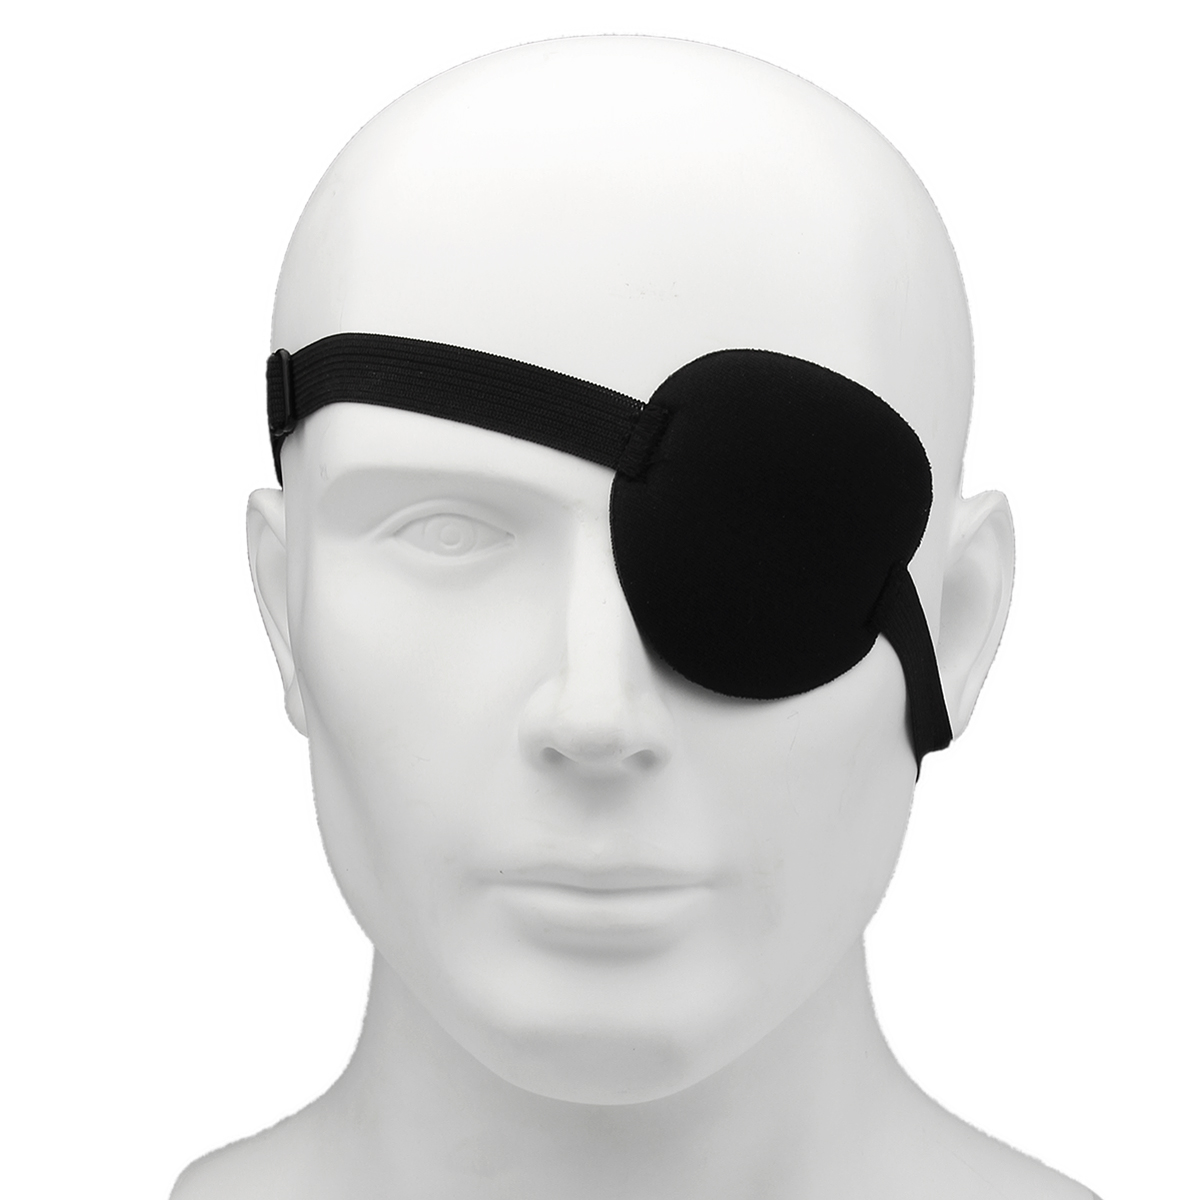 Concave Eye Patch Groove Washable Eyeshades With